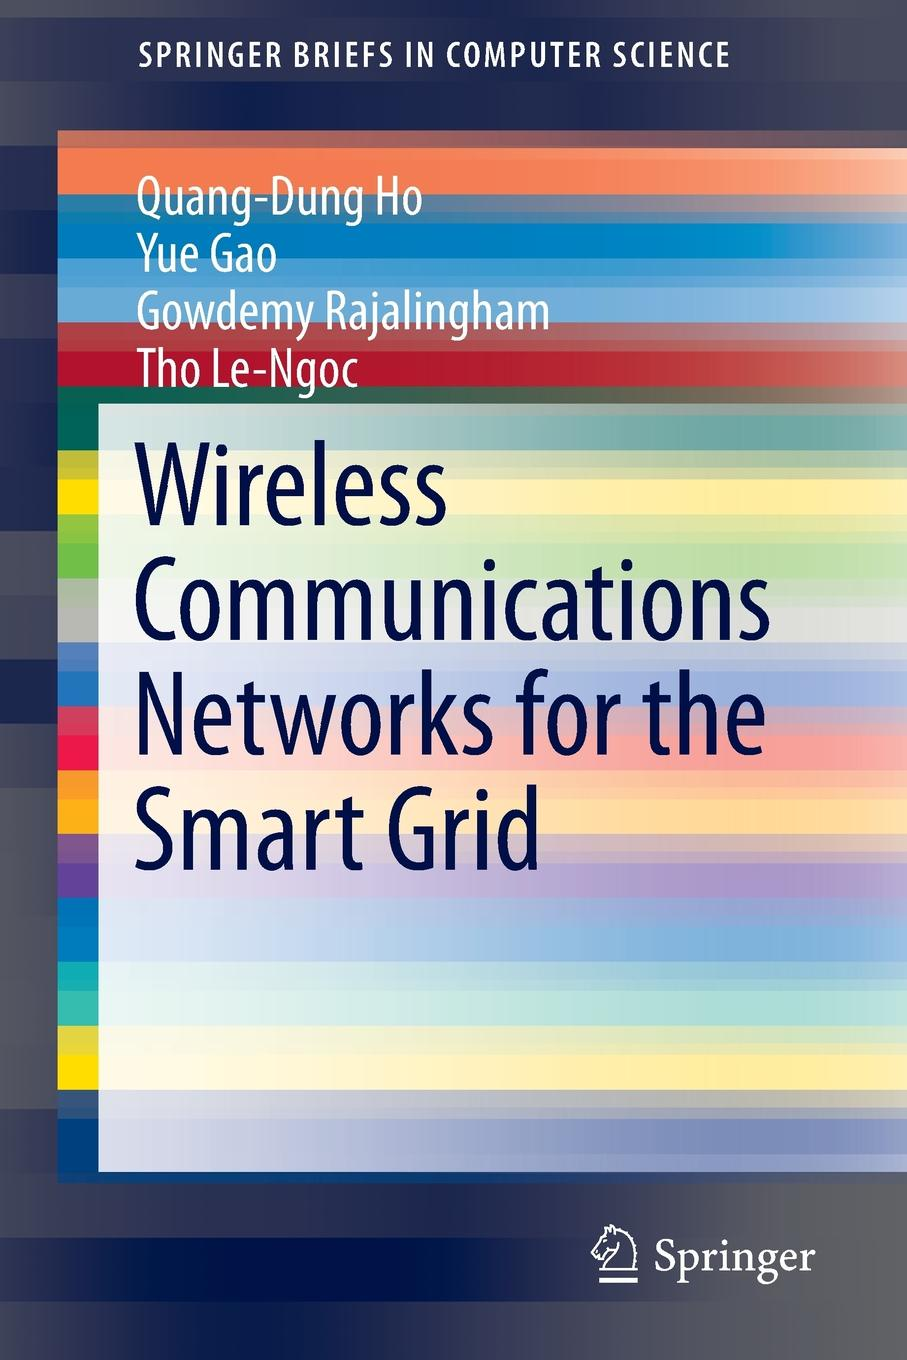 Quang-Dung Ho, Yue Gao, Gowdemy Rajalingham Wireless Communications Networks for the Smart Grid nick jenkins smart grid technology and applications